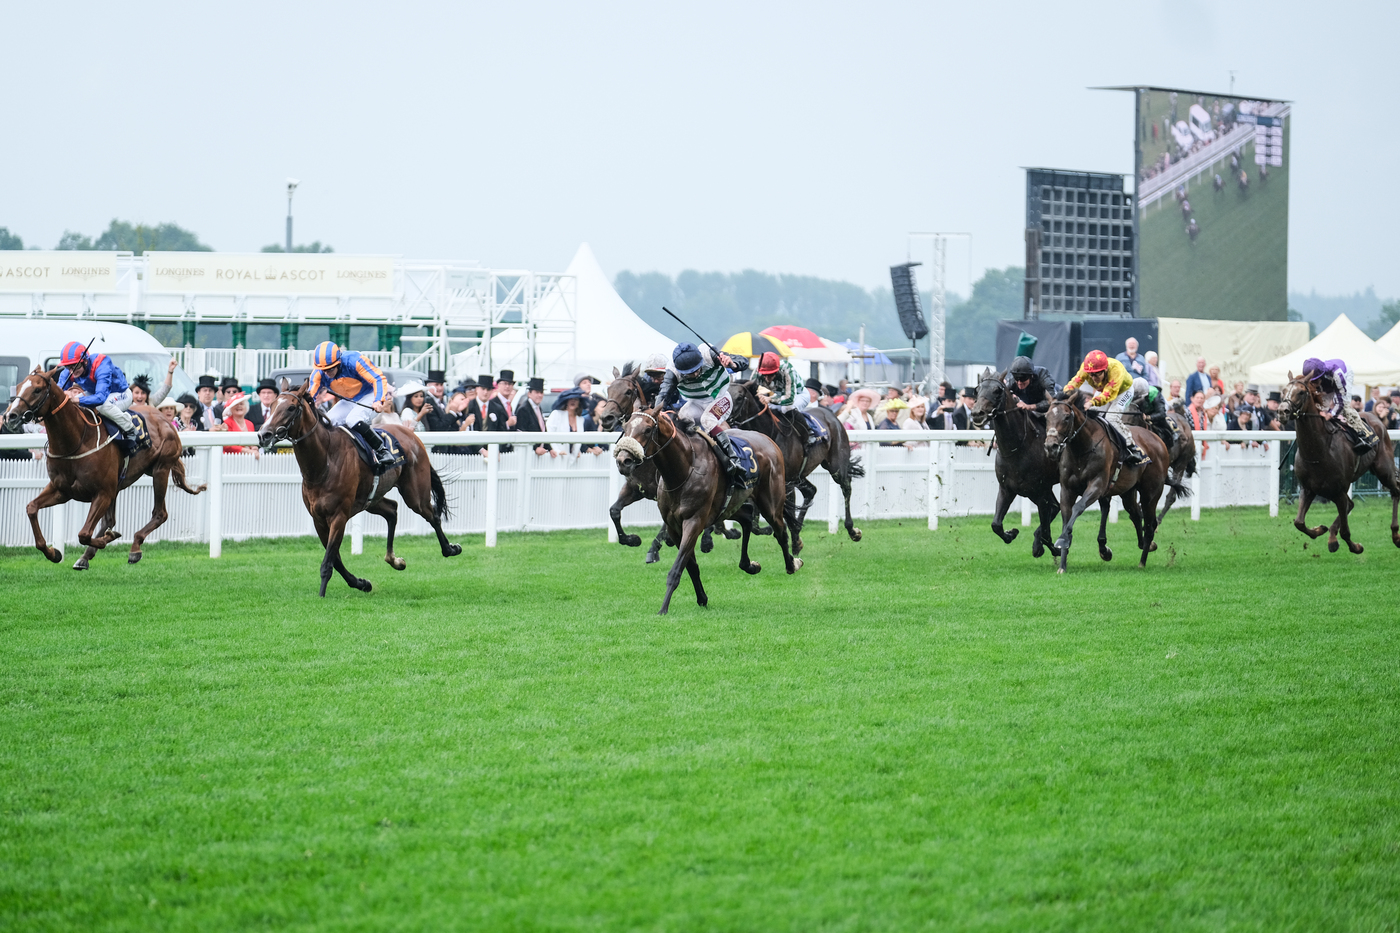 Longines Flat Racing Event: Longines celebrates elegance at Royal Ascot with Chi Ling Lin 14